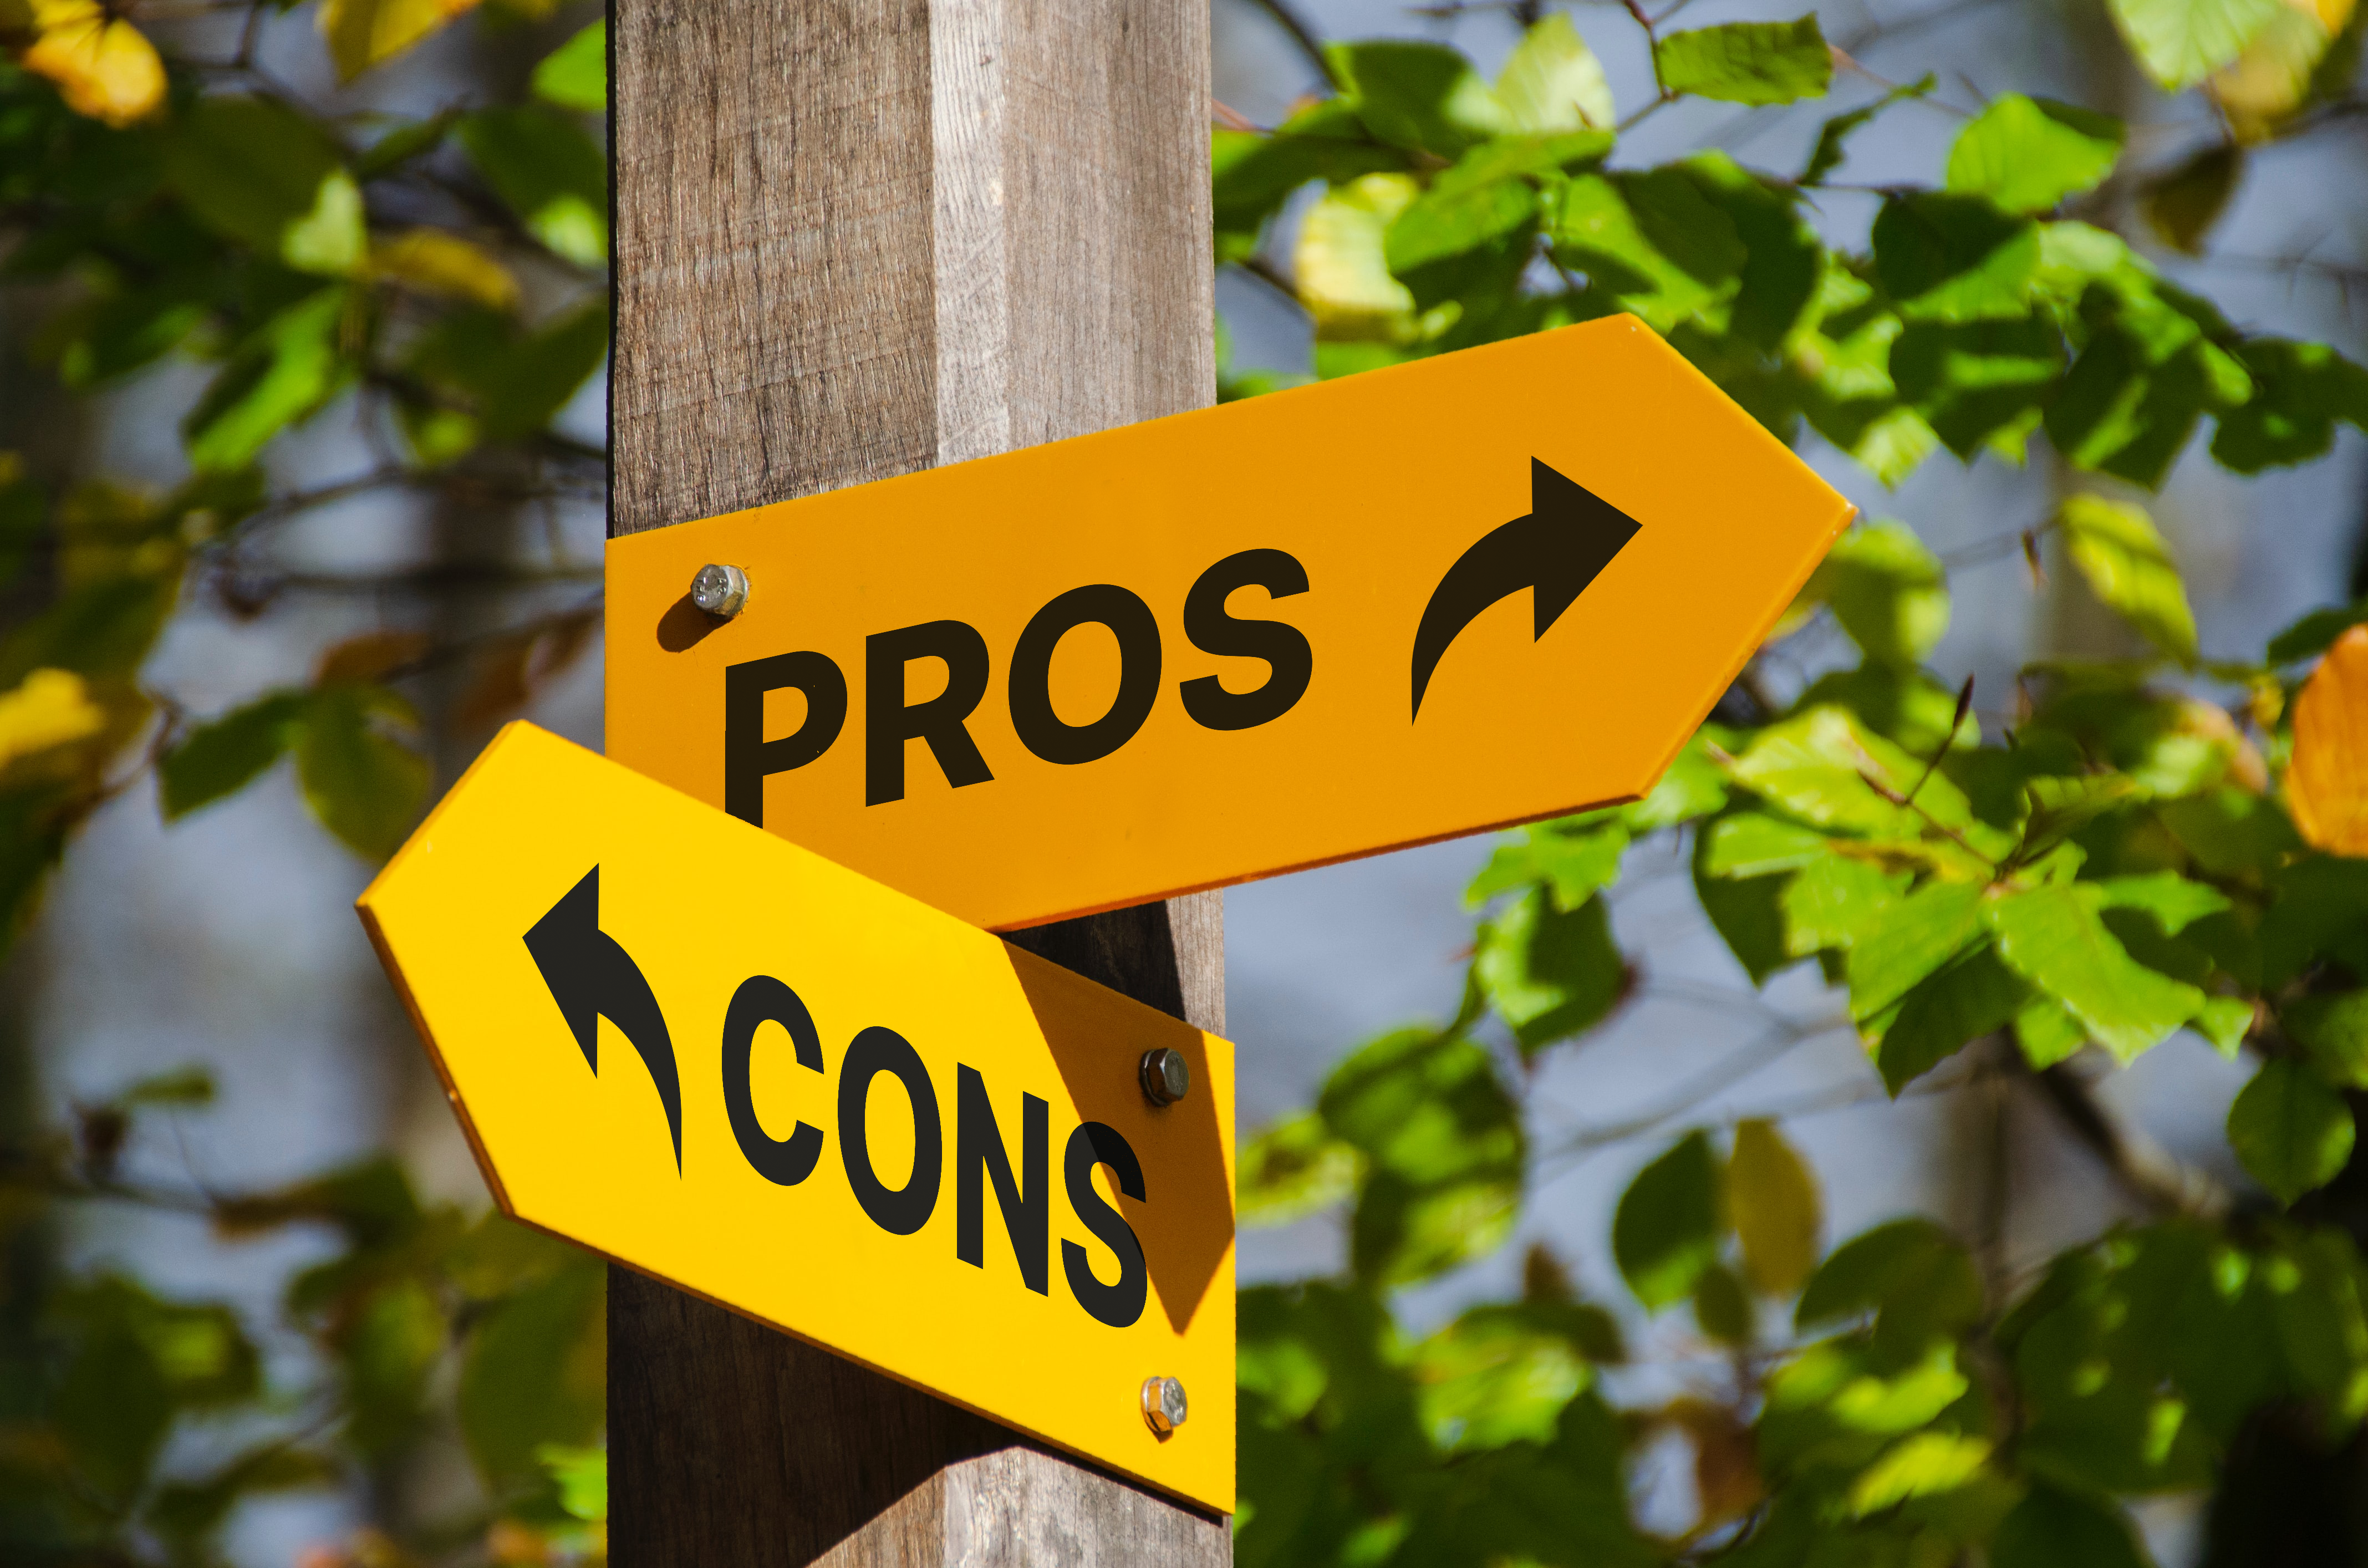 pros or cons sign